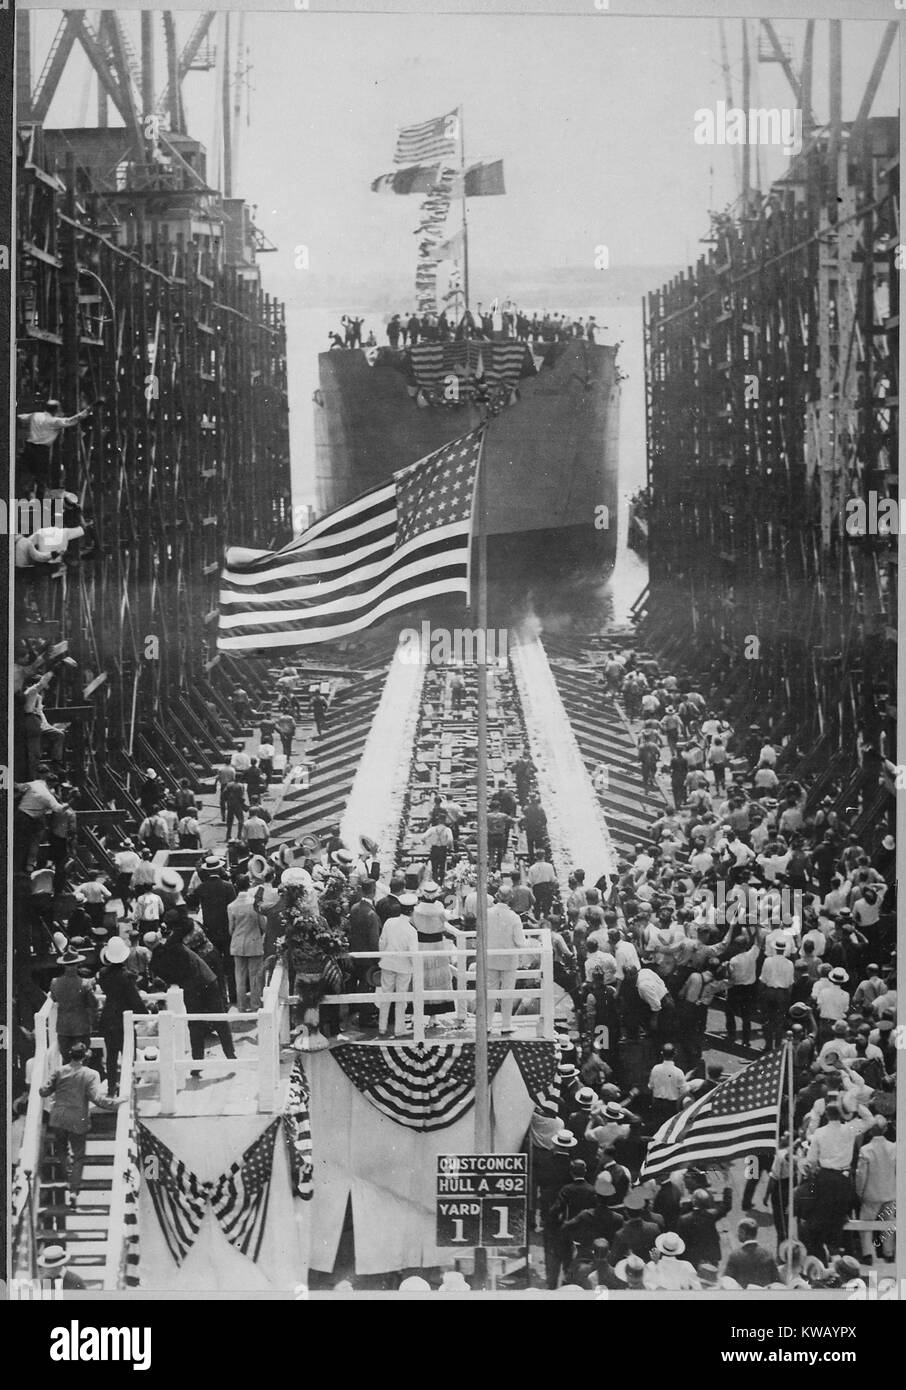 The elaborate launch of the US naval vessel, Quistconck, at the Hog Island shipyards, with President Woodrow Wilson - Stock Image